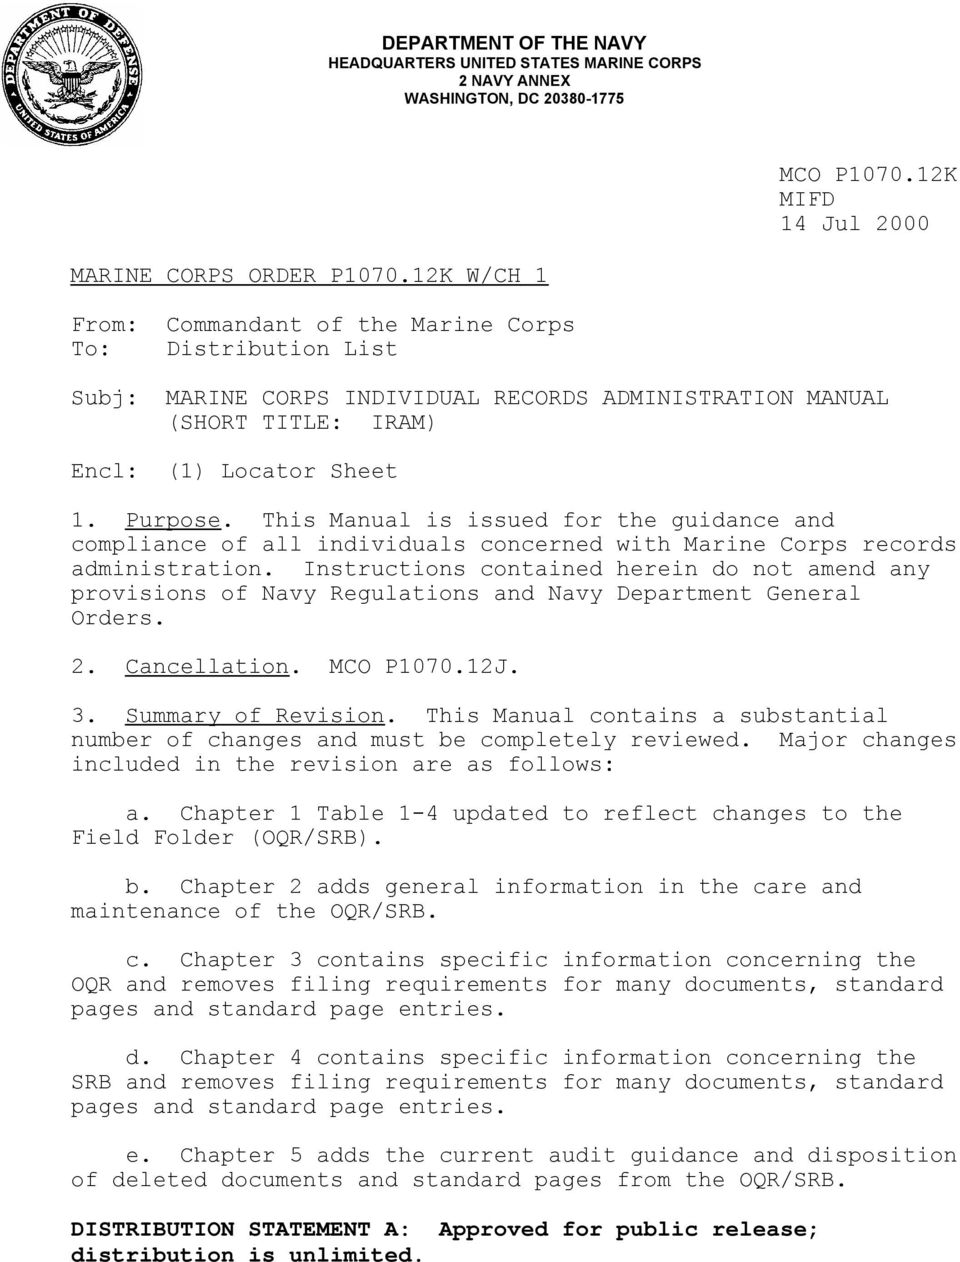 This Manual is issued for the guidance and compliance of all individuals concerned with Marine Corps records administration.